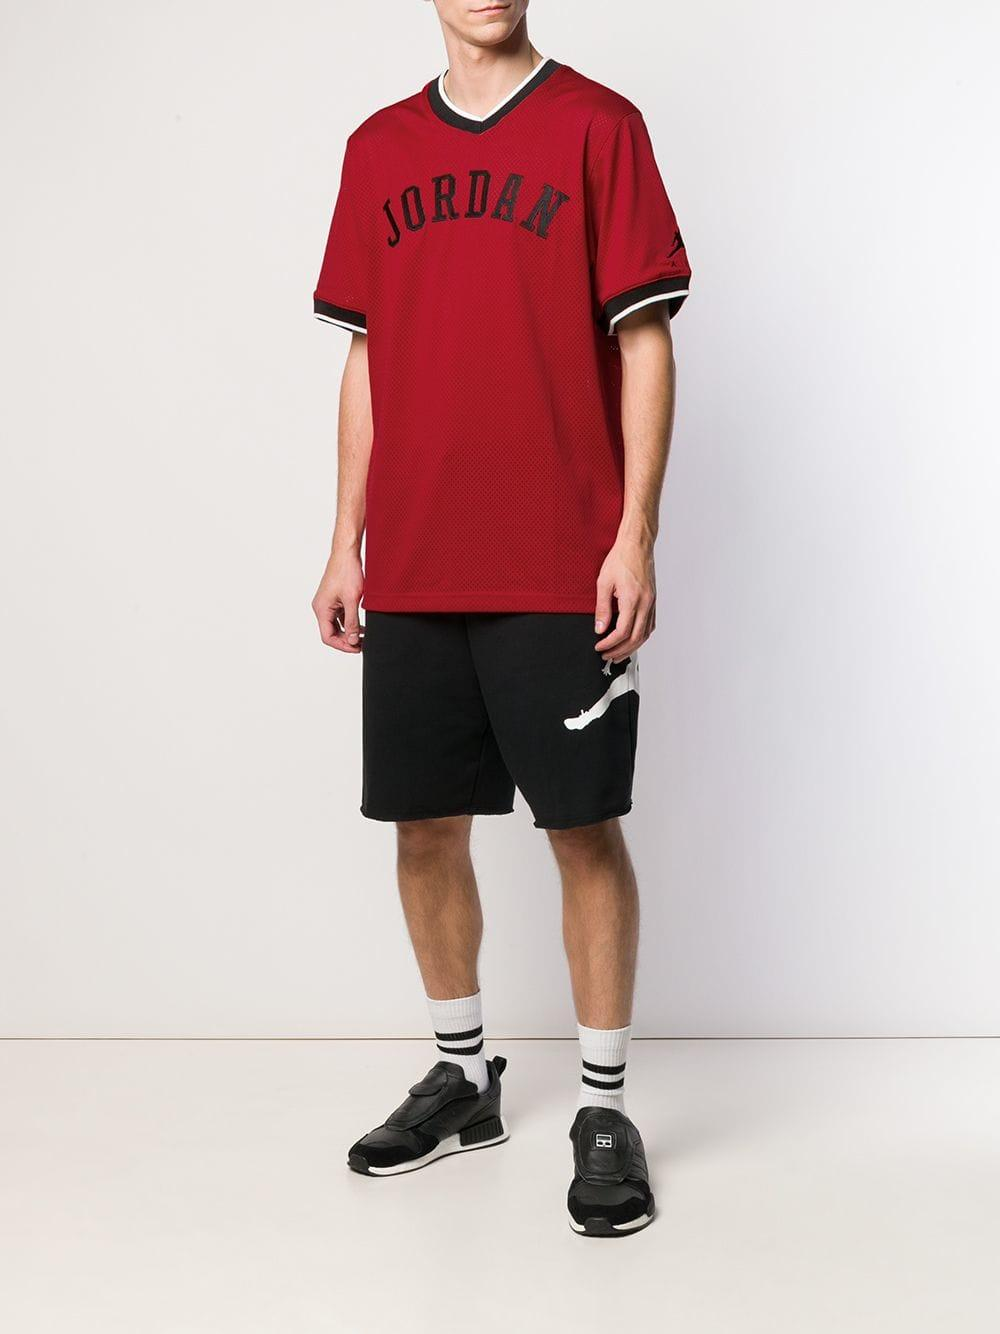 22f1146a6099 Nike Jordan Jump Man T-shirt in Red for Men - Lyst